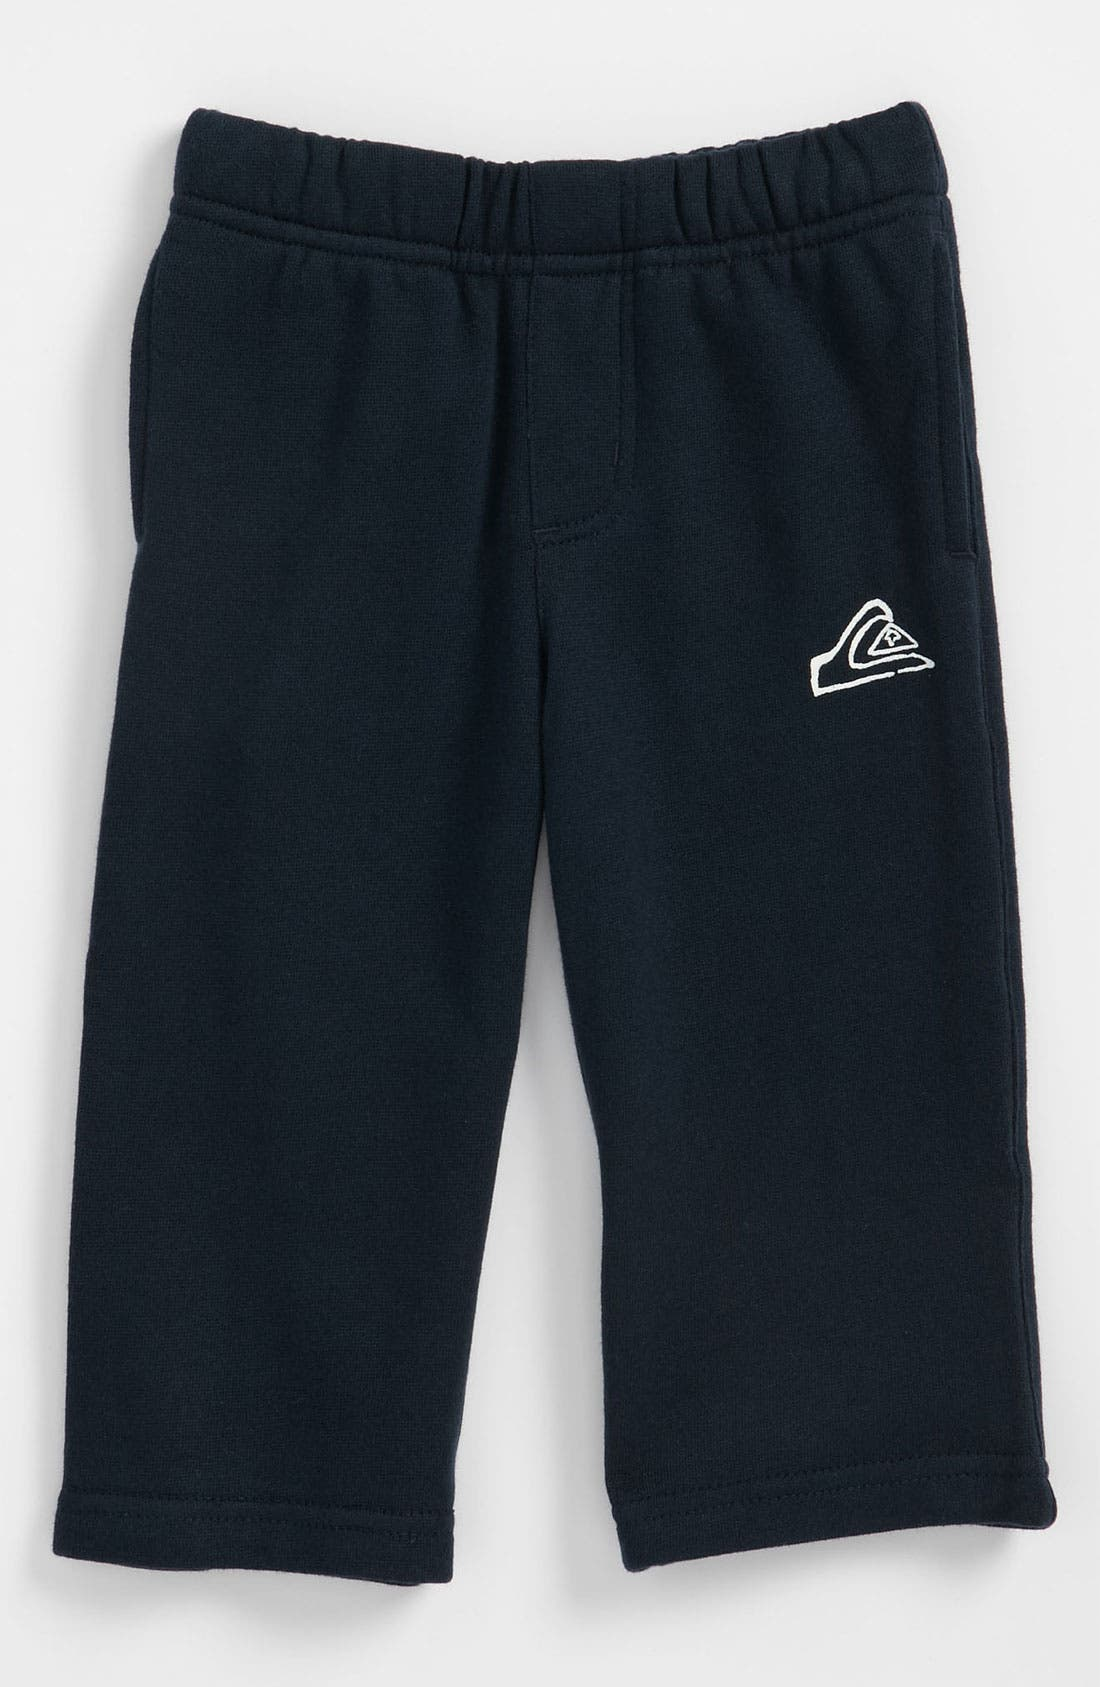 Alternate Image 1 Selected - Quiksilver 'Rest Stop' Pants (Toddler)